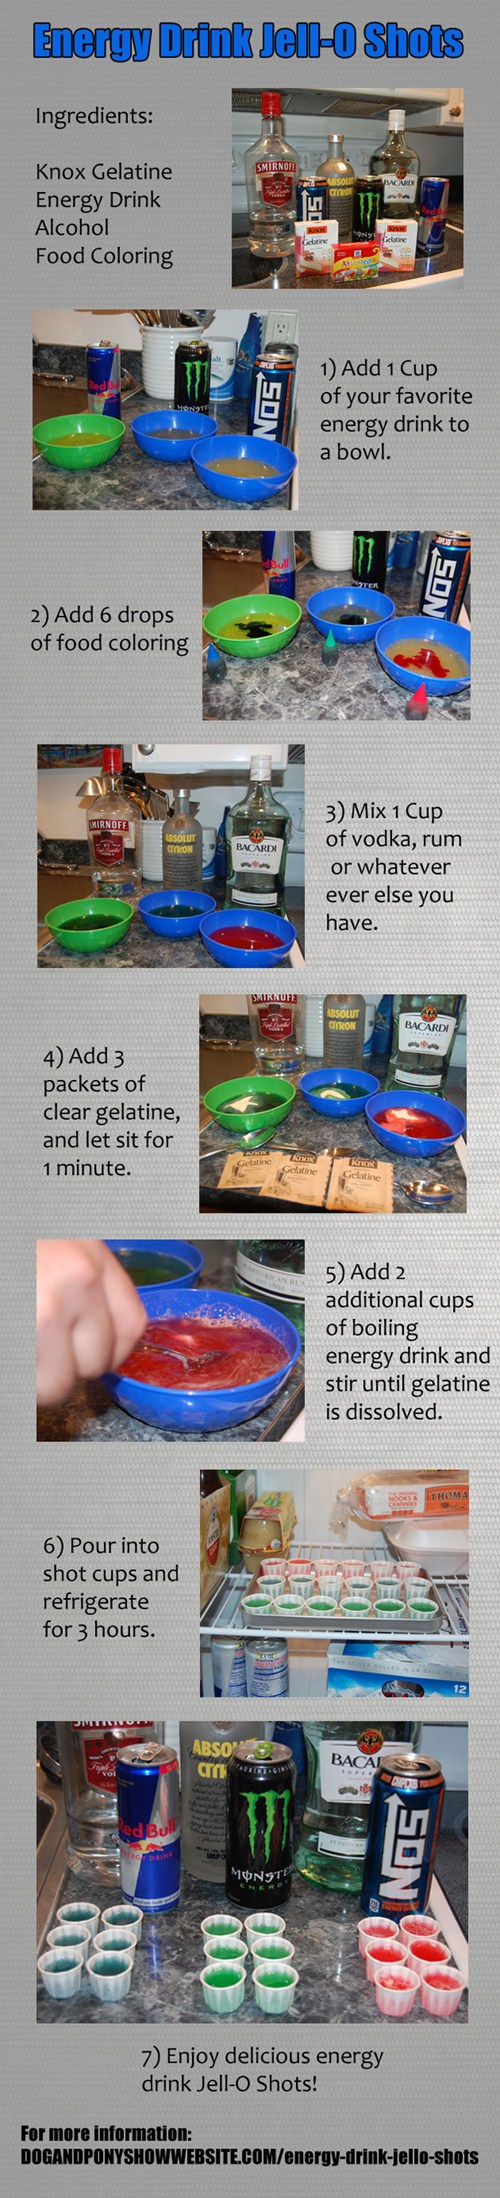 How To Make Red Bull Jell-O Shots of the Day